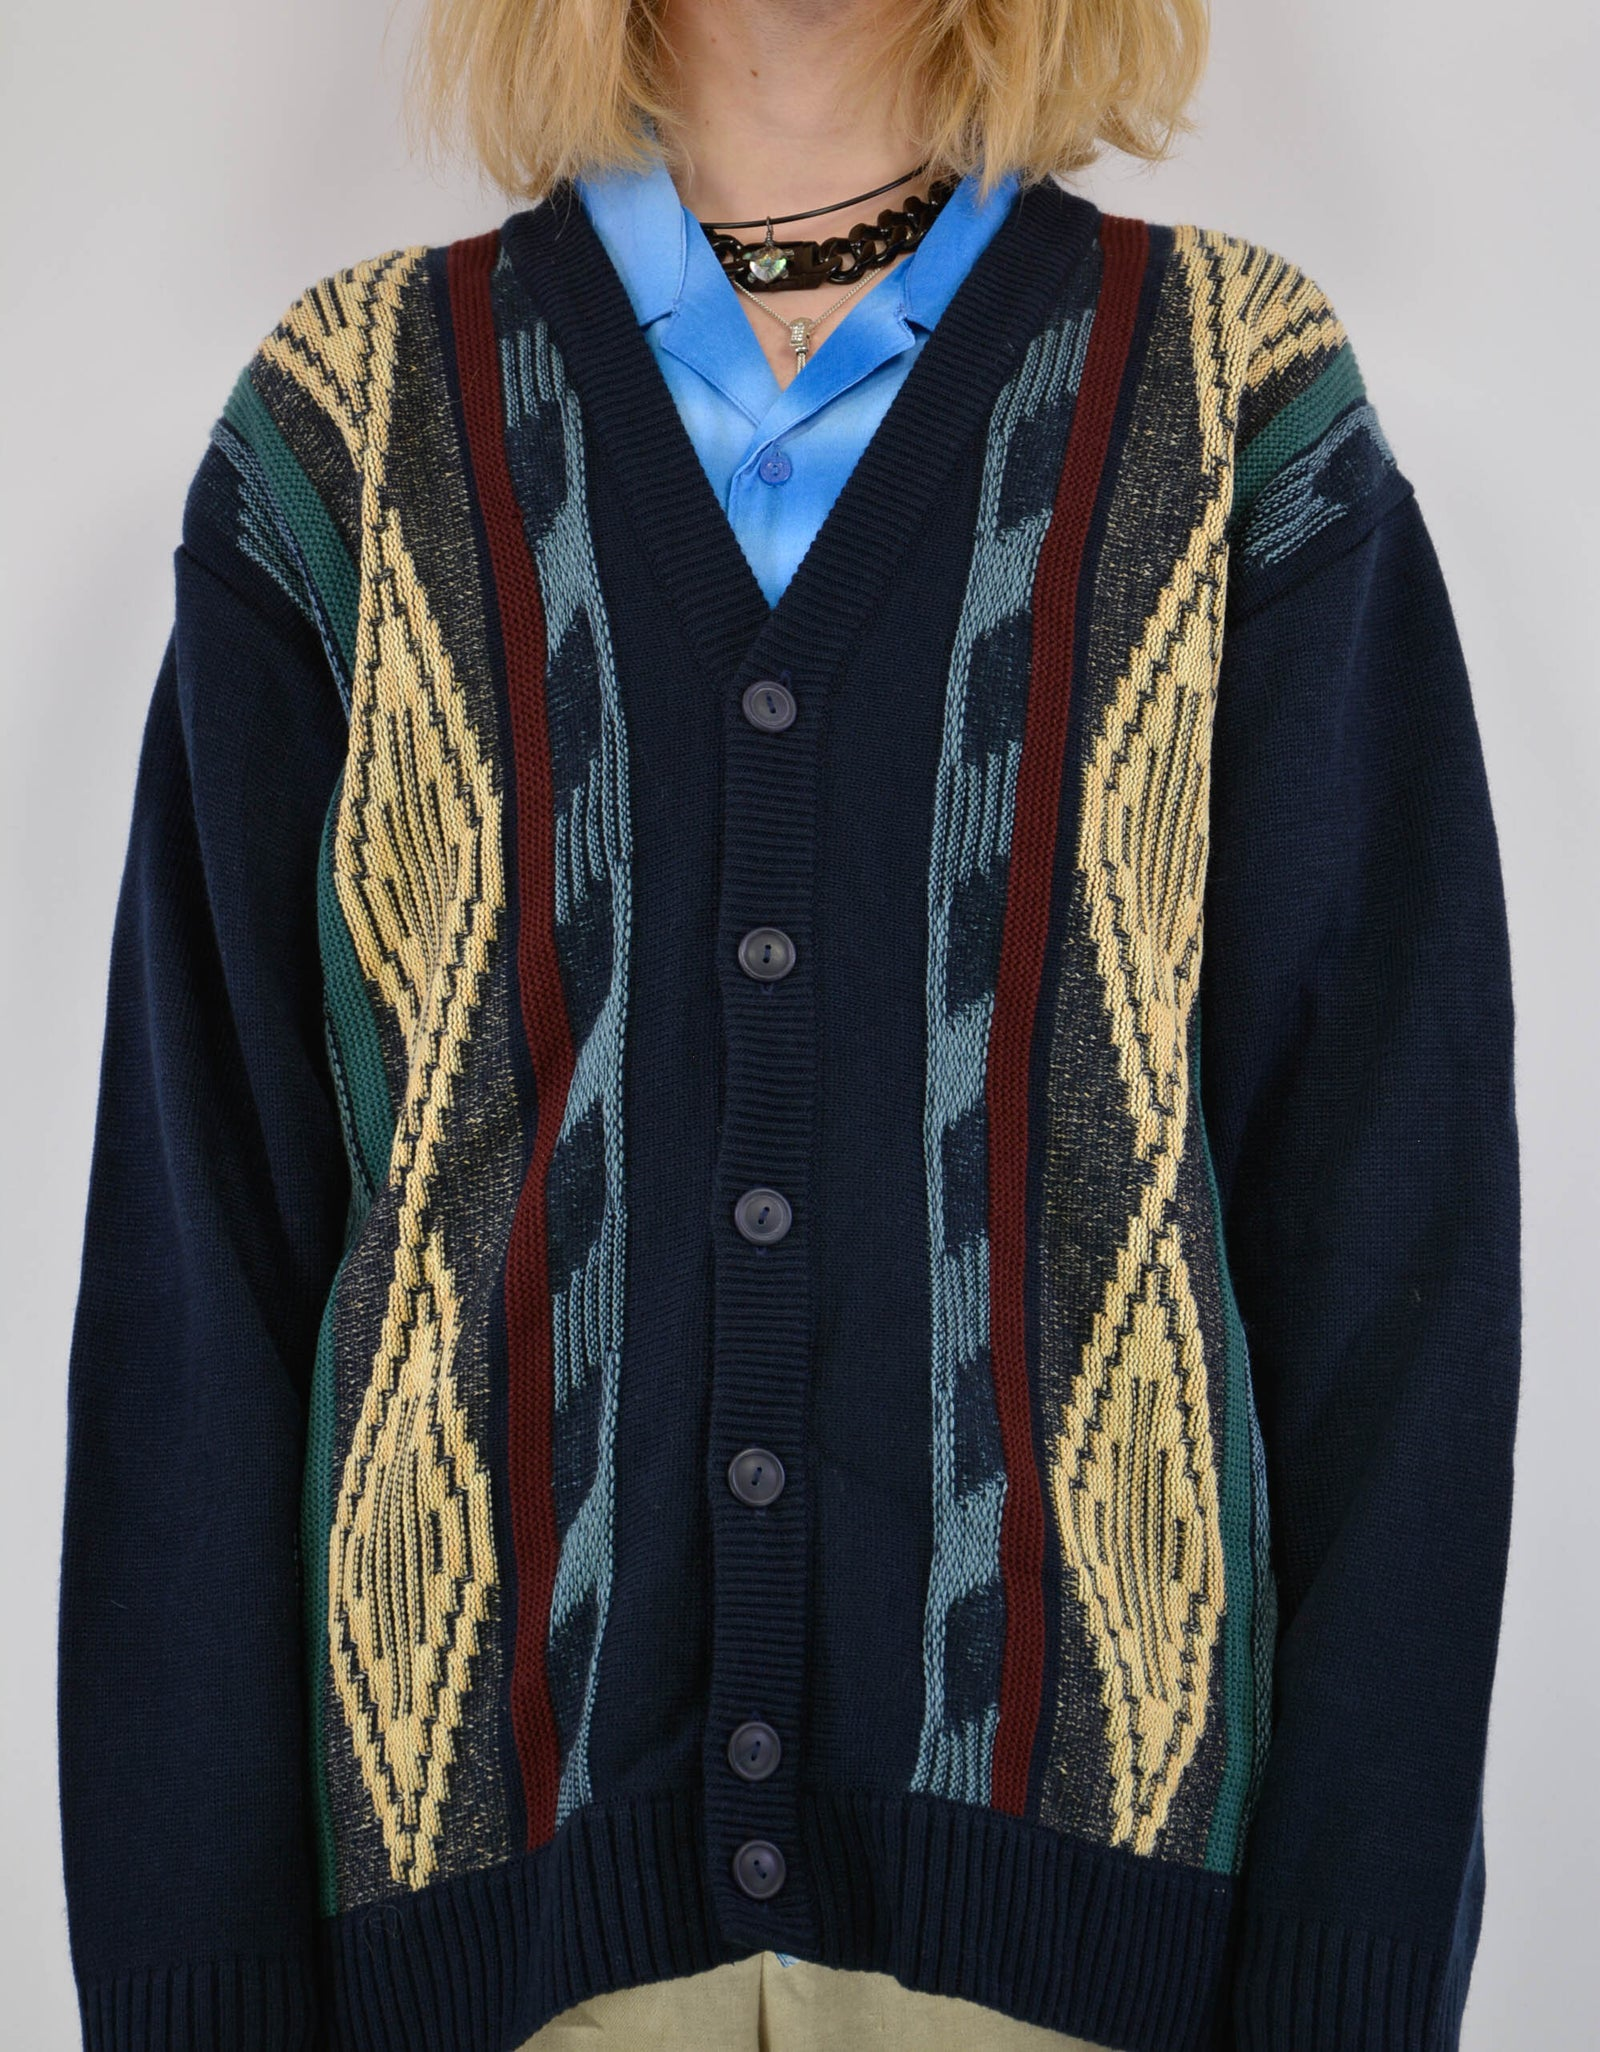 90s cardigan - PICKNWEIGHT - VINTAGE KILO STORE